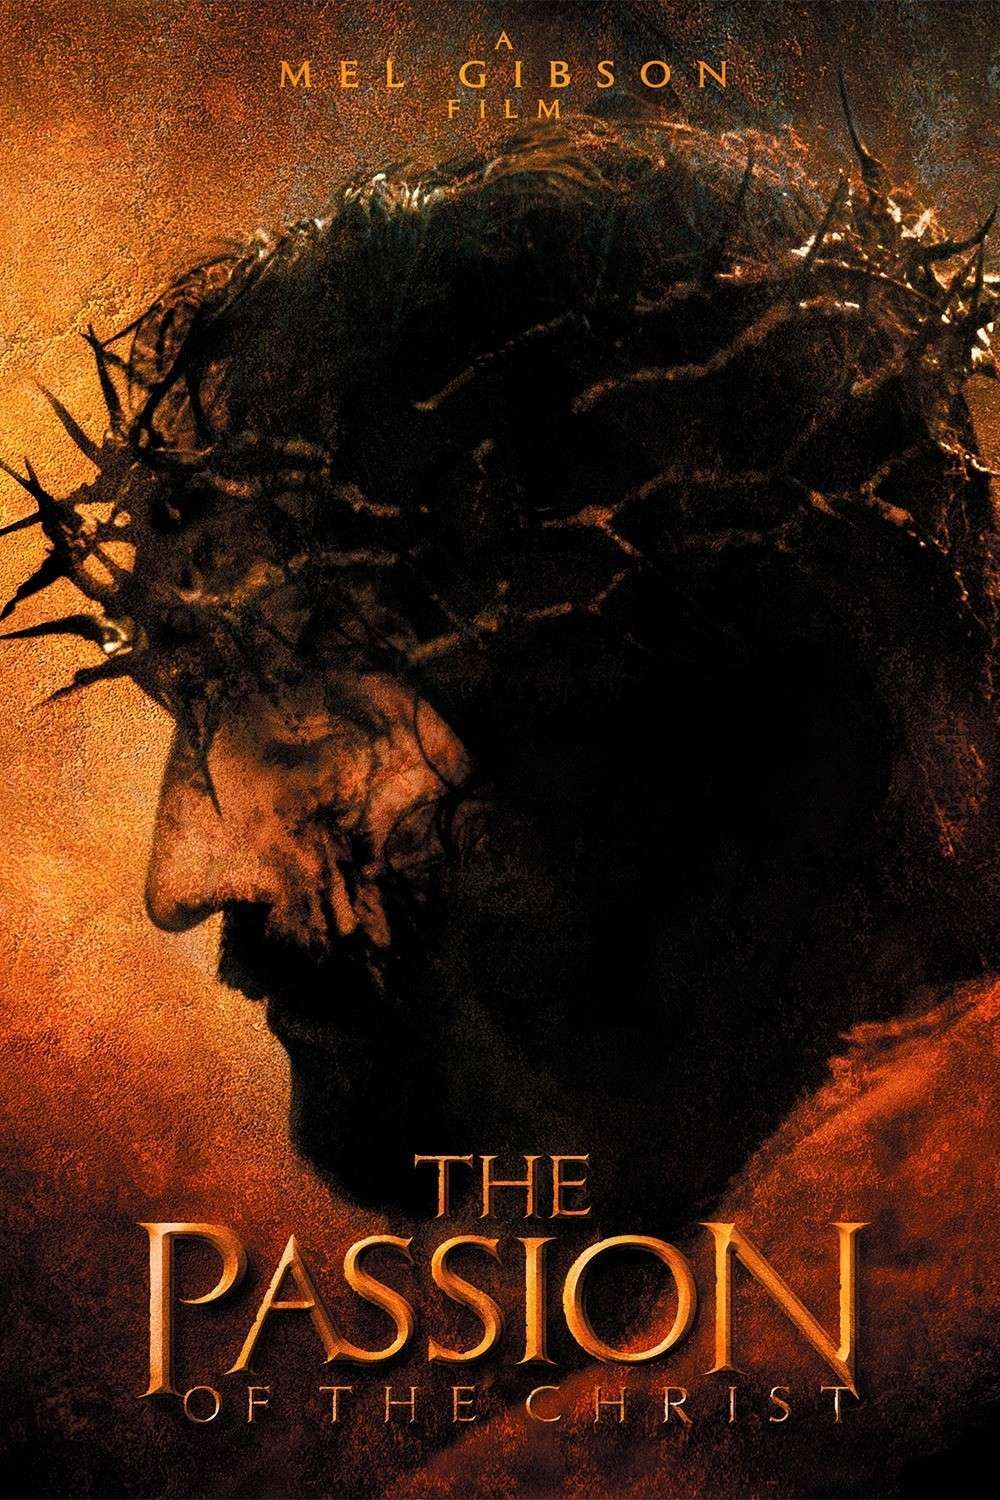 Mel Gibson's Passion of The Christ